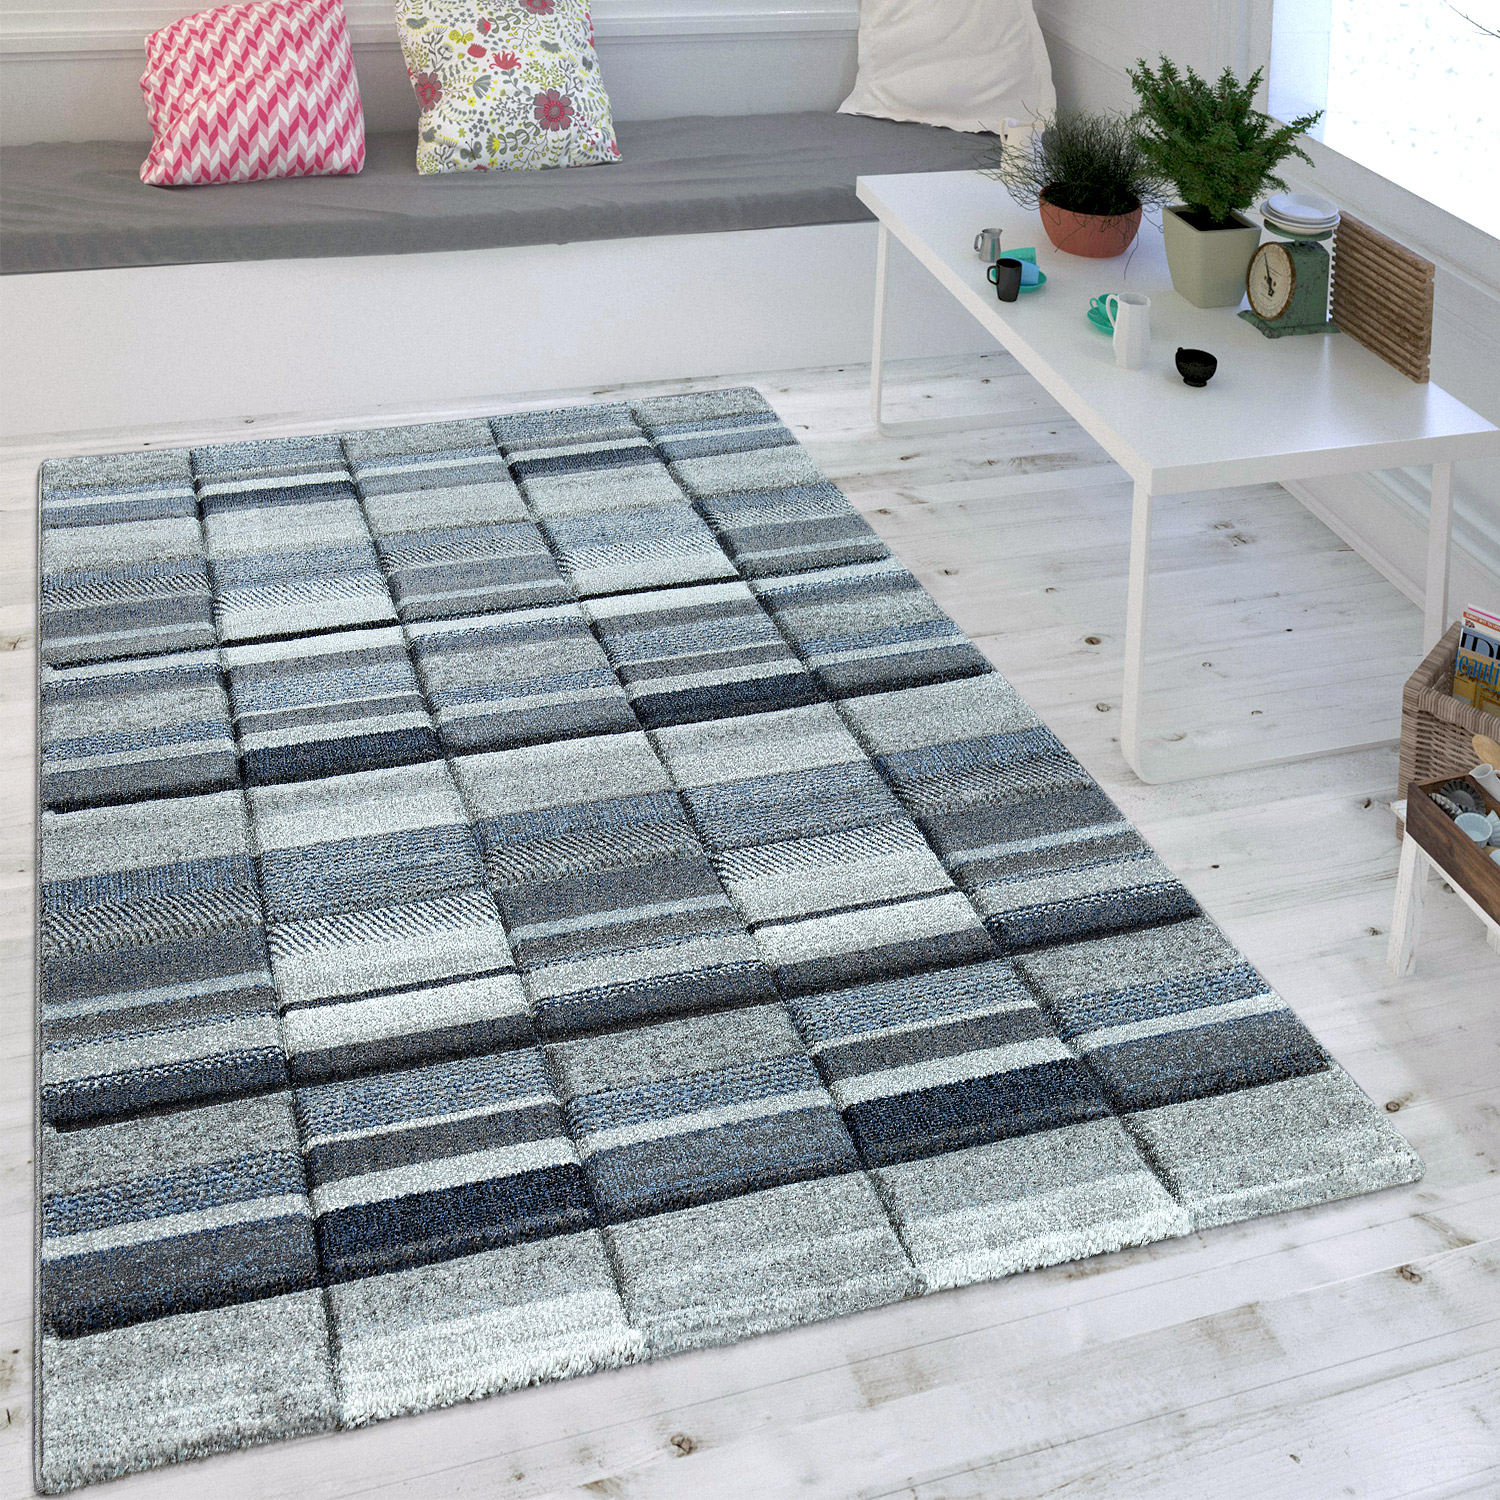 tapis look scandinave pastel bleu gris tapis tapis poil ras. Black Bedroom Furniture Sets. Home Design Ideas